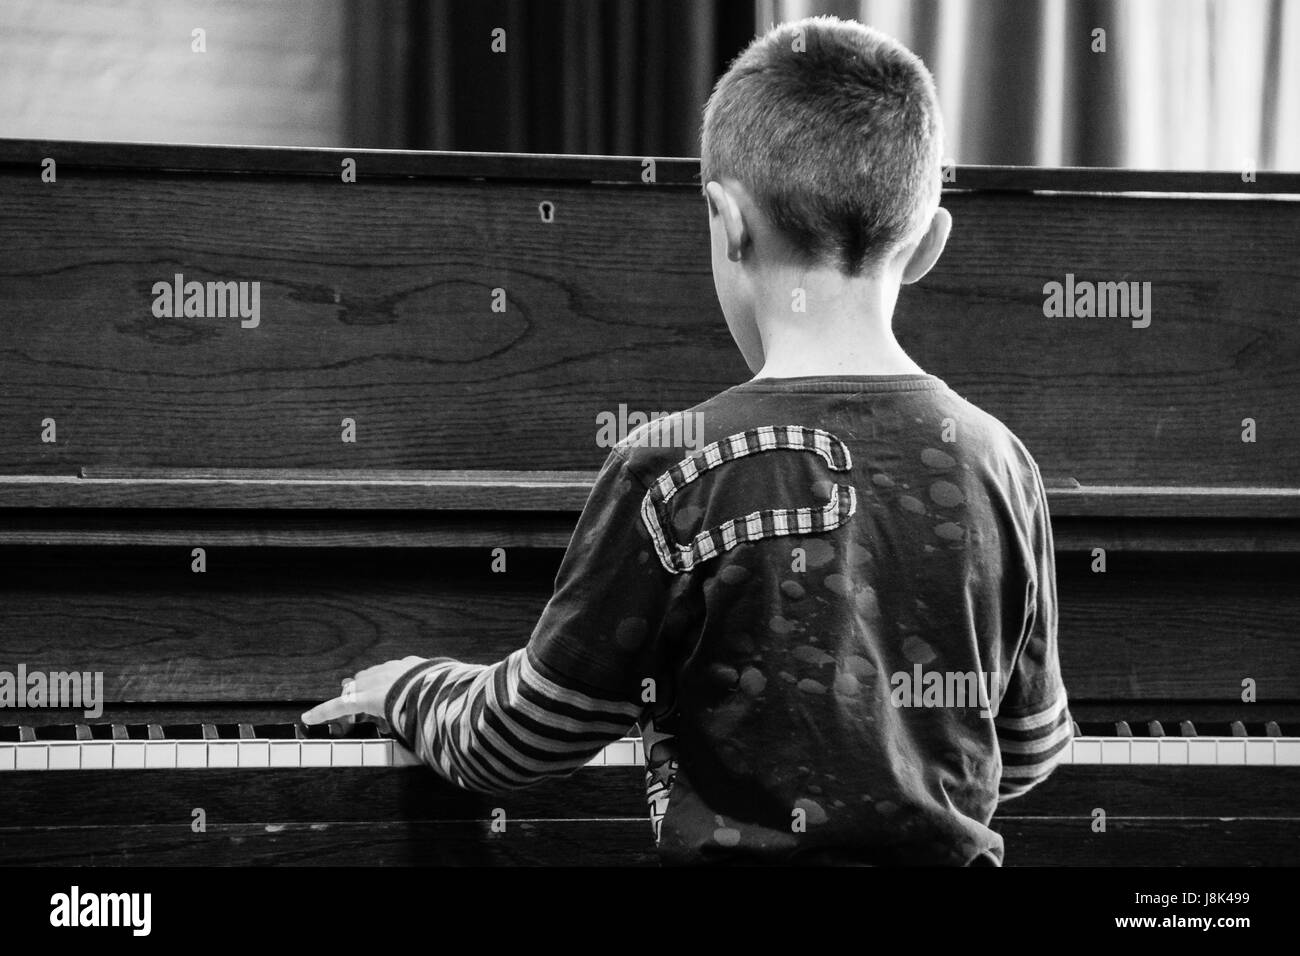 Young boy performs in a studio at an upright piano during a music recital. - Stock Image